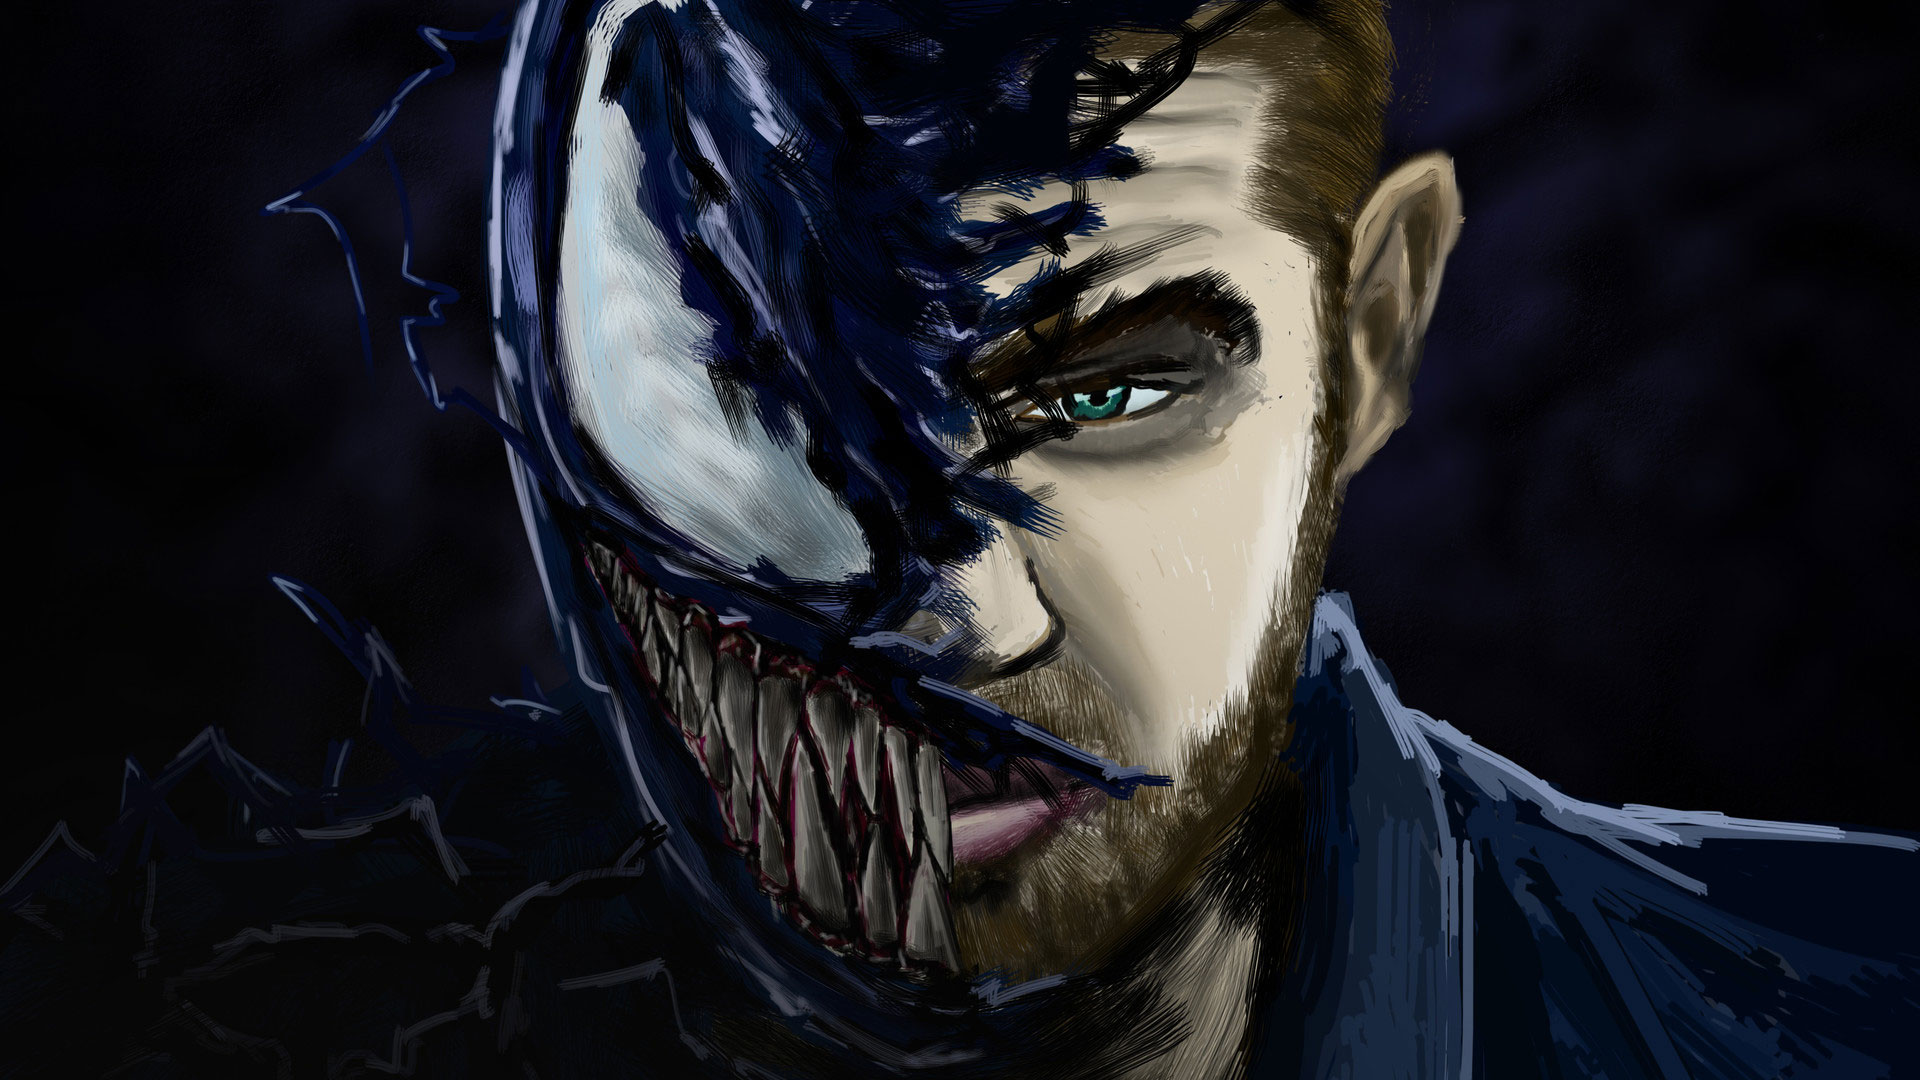 We Are Venom Artwork Hd Superheroes 4k Wallpapers Images